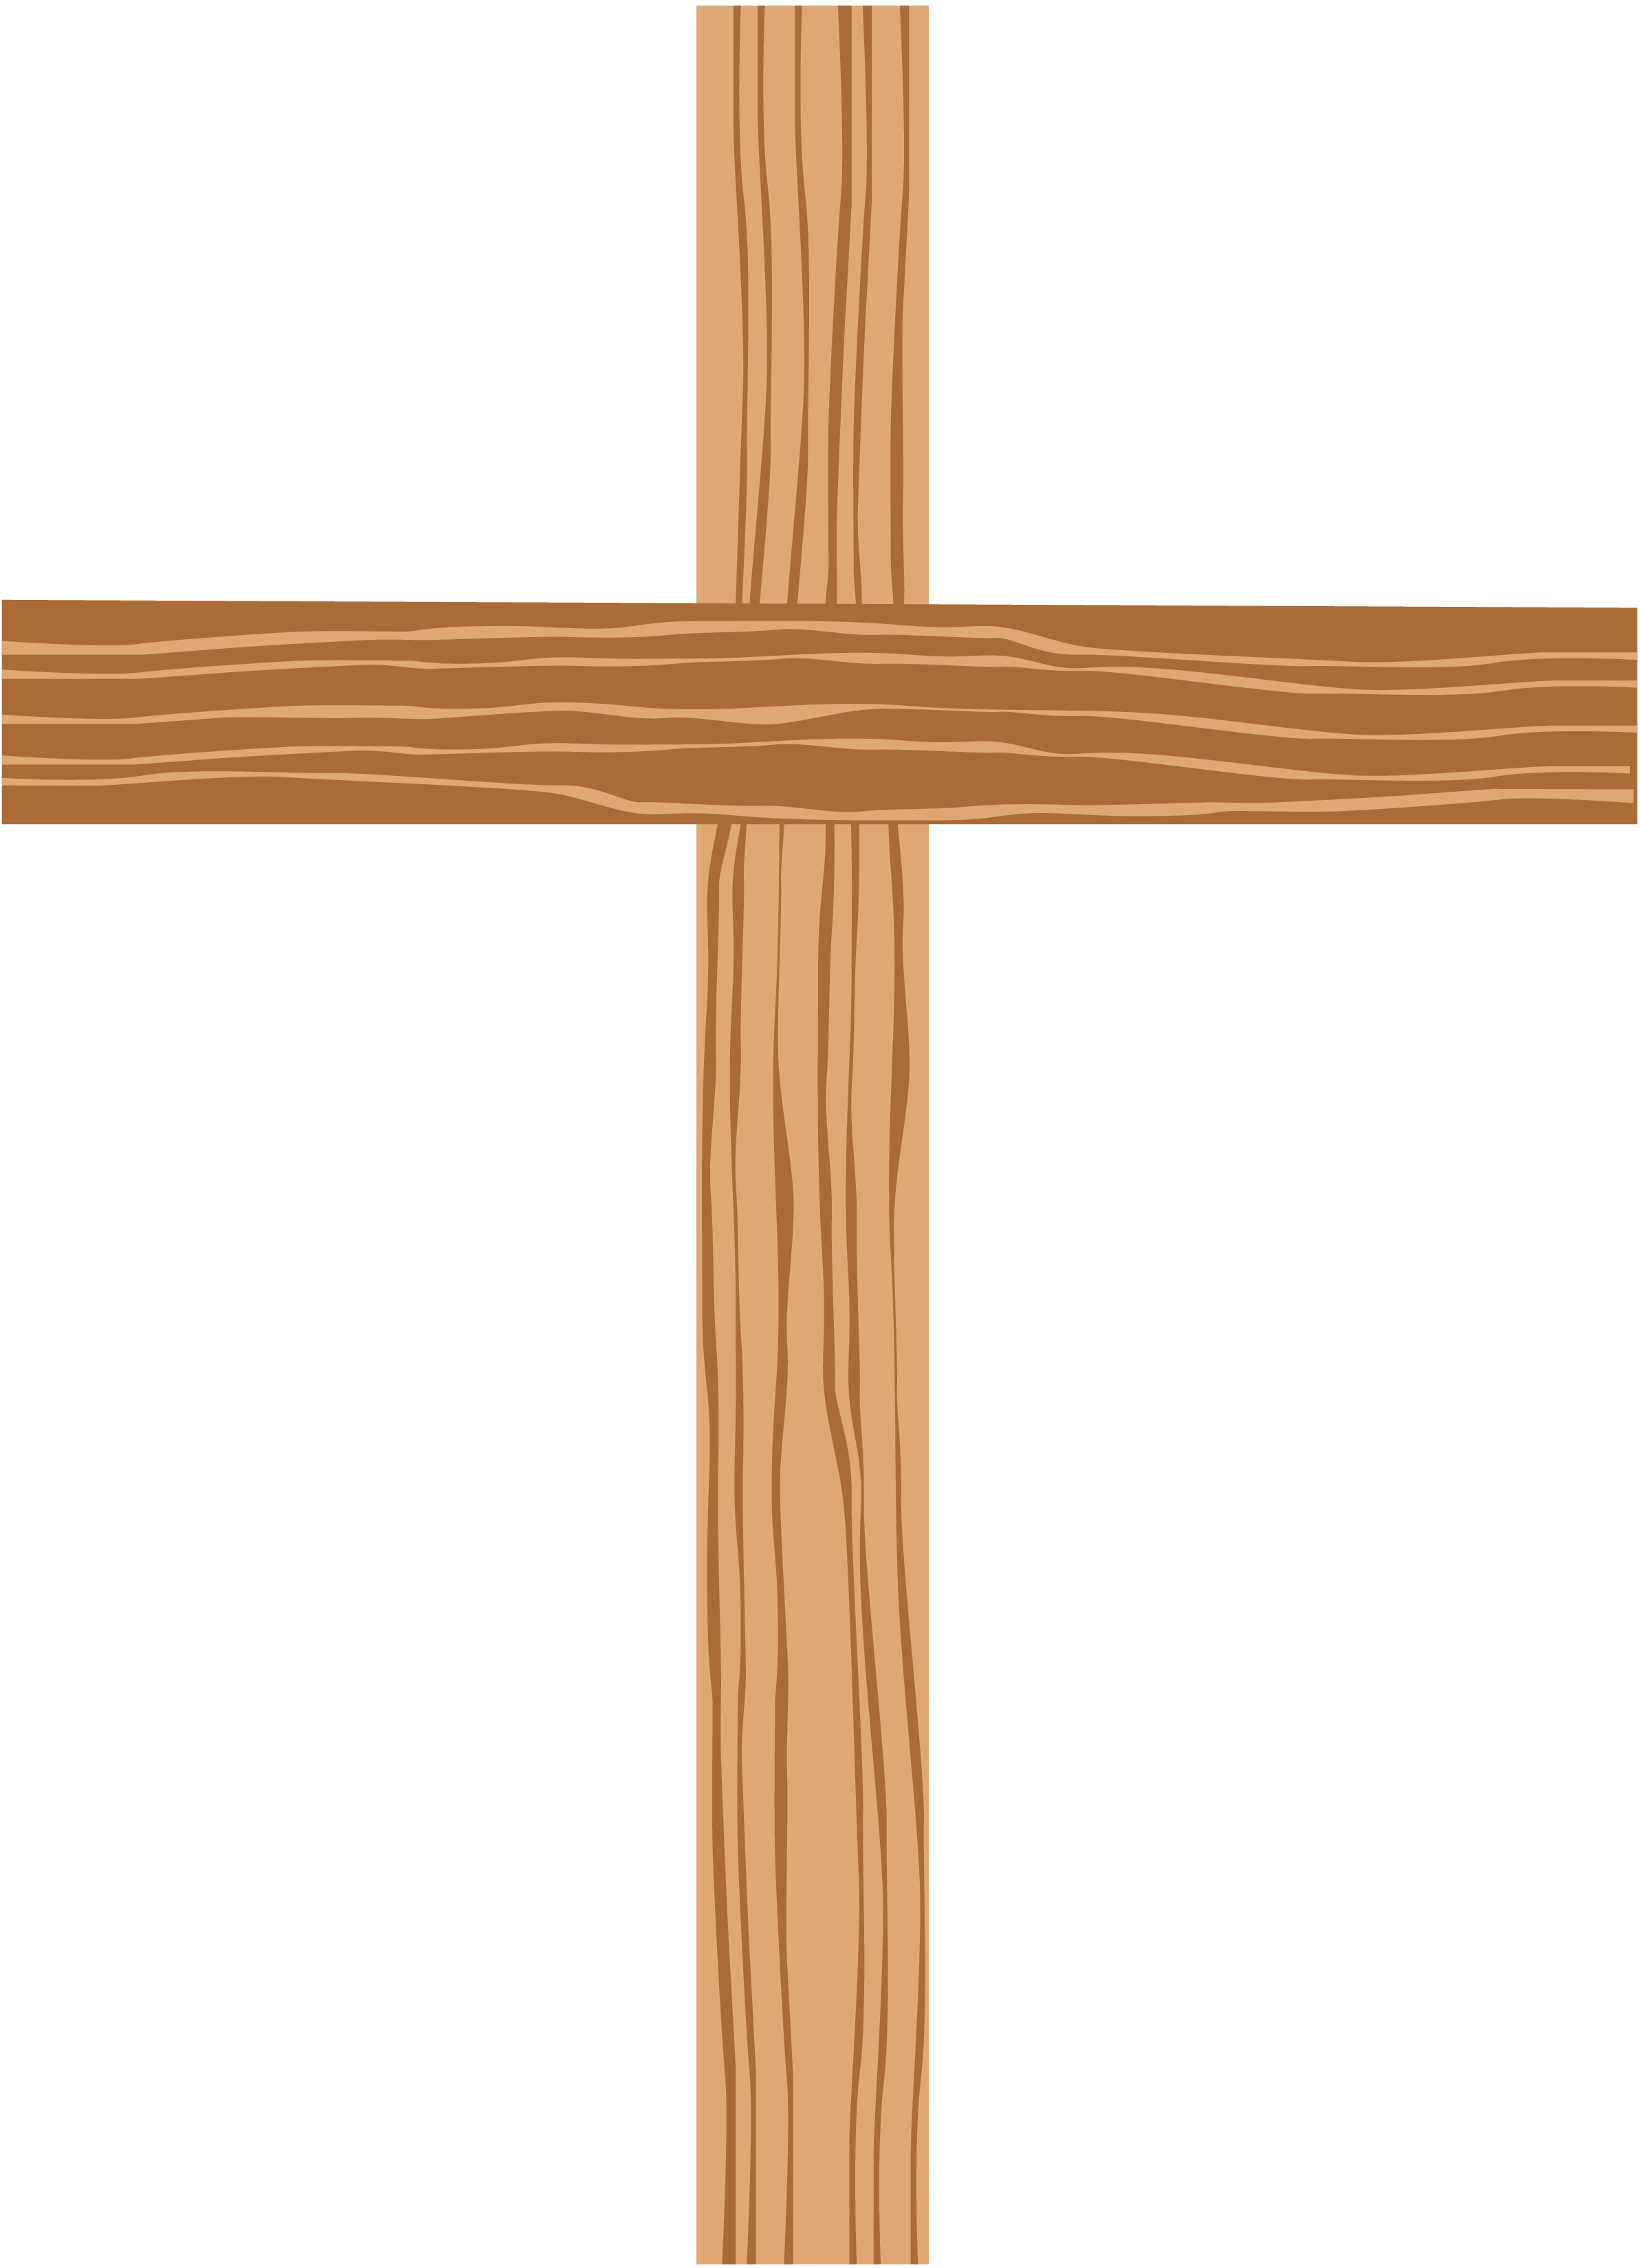 Cross of christ clipart graphic royalty free Christian cross PNG images free download graphic royalty free